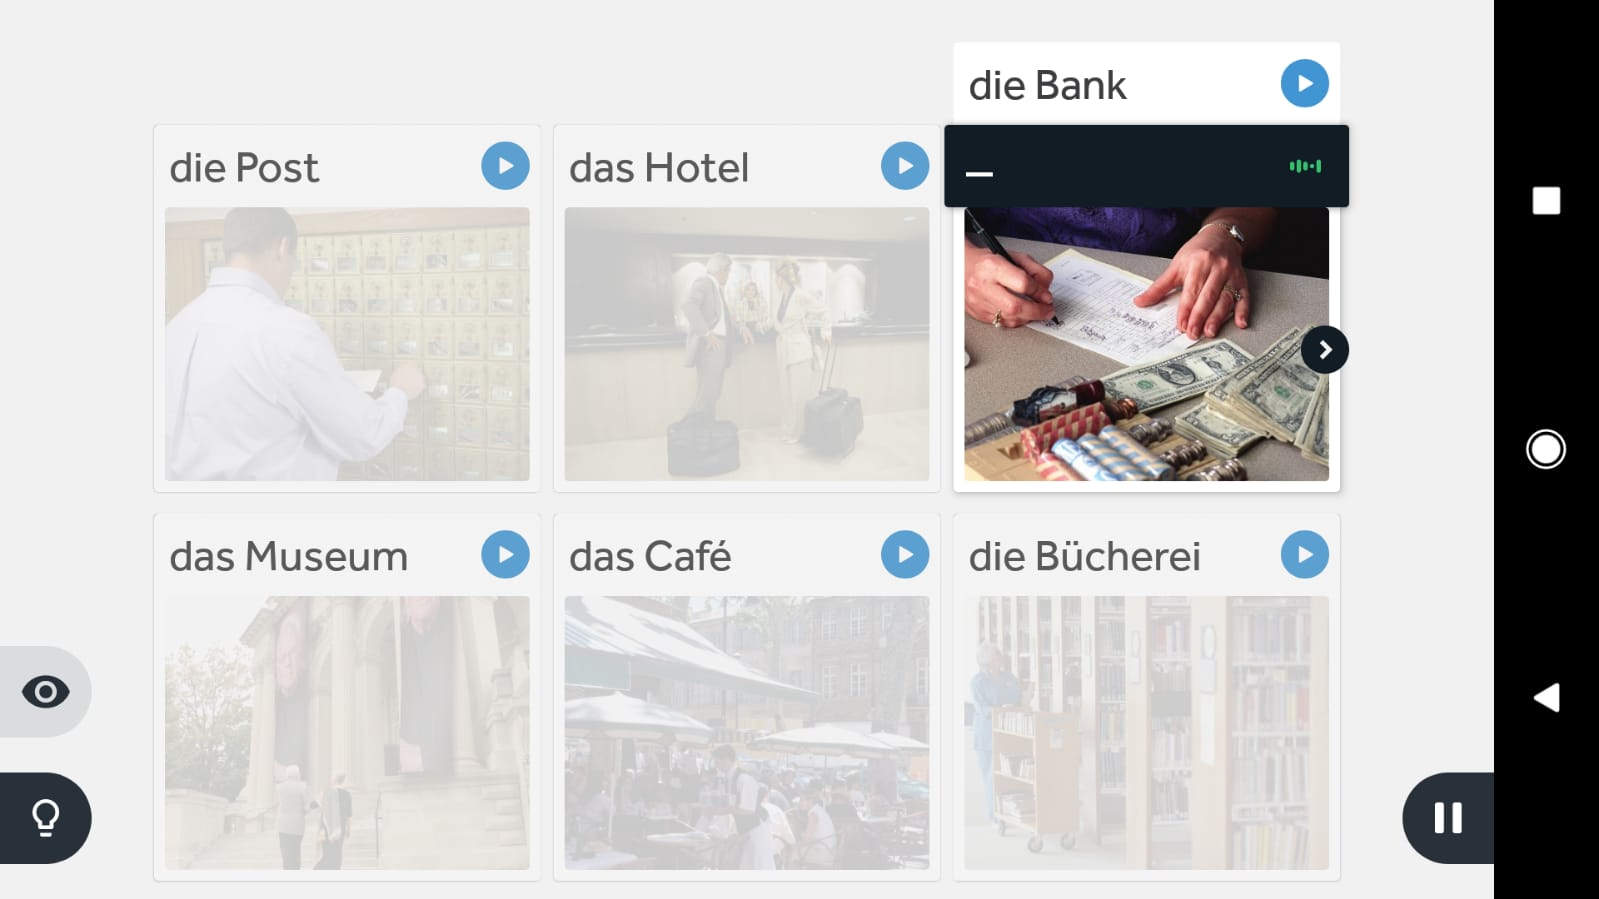 Level Up Learning German With Rosetta Stone